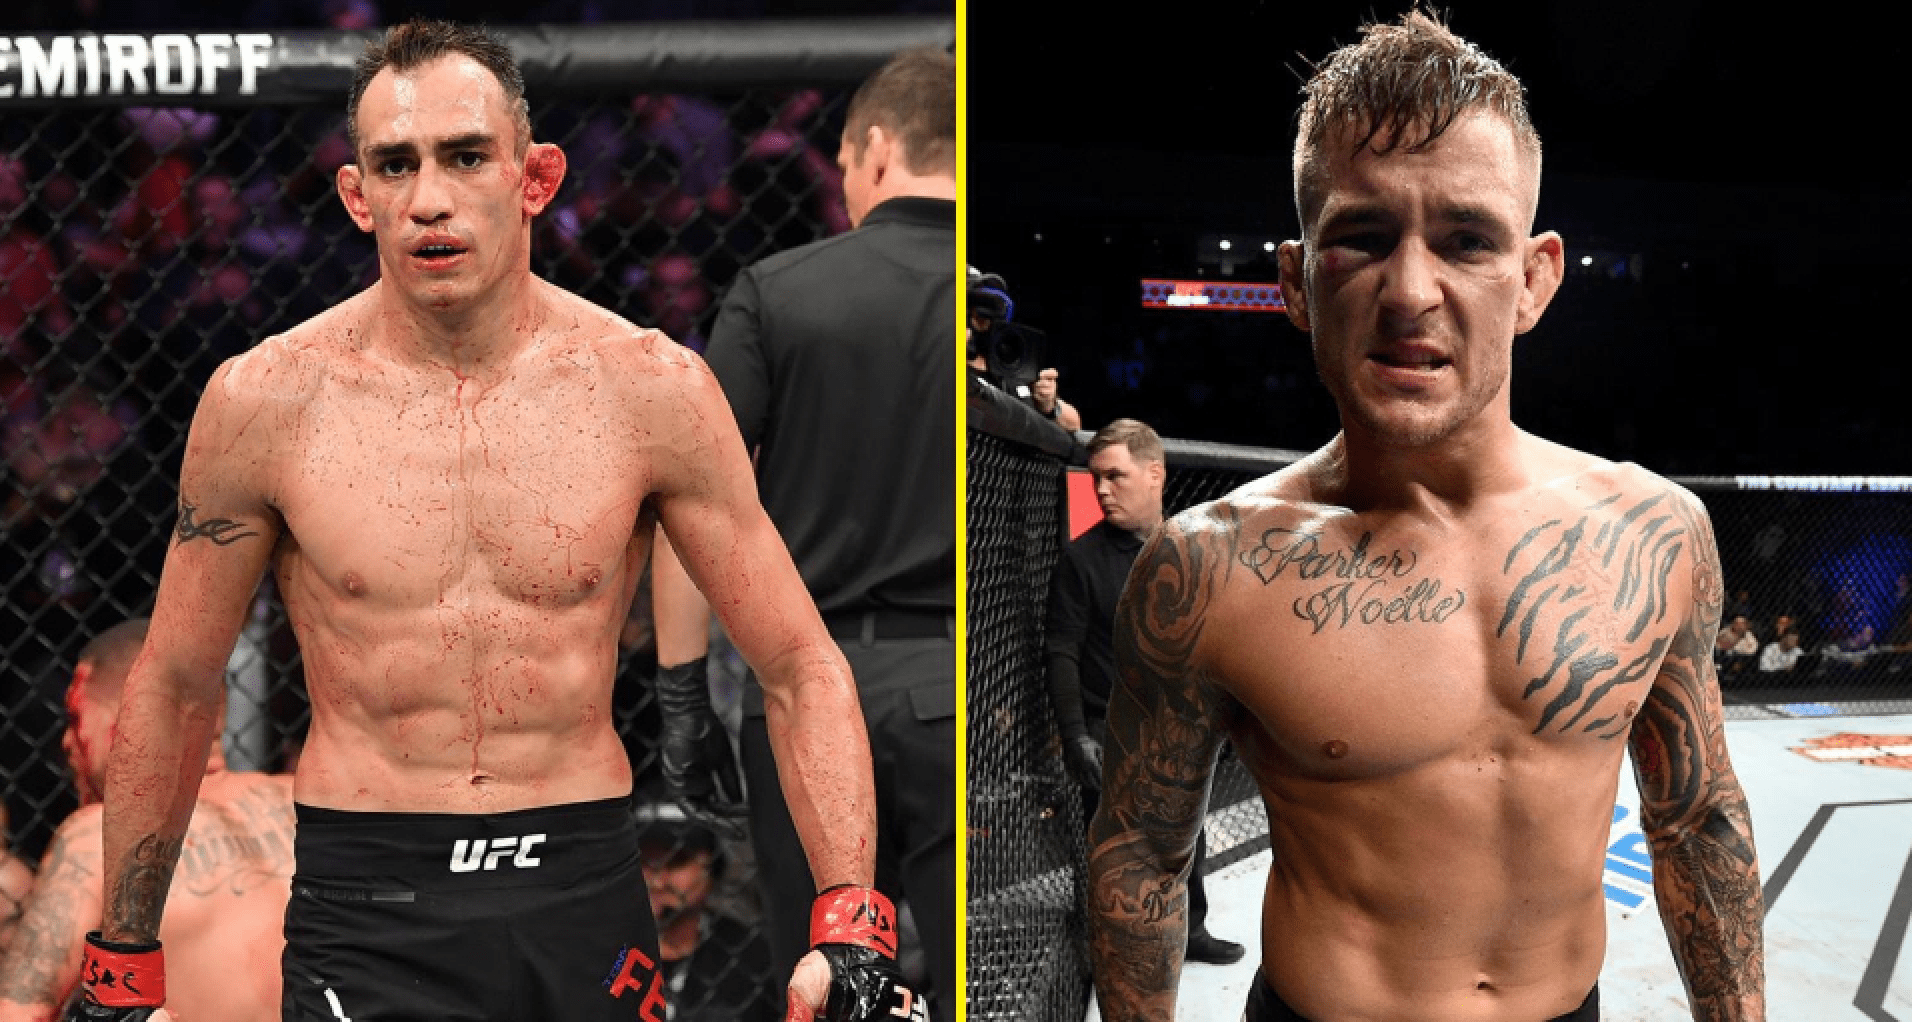 UFC Tony Ferguson and Dustin Poirier